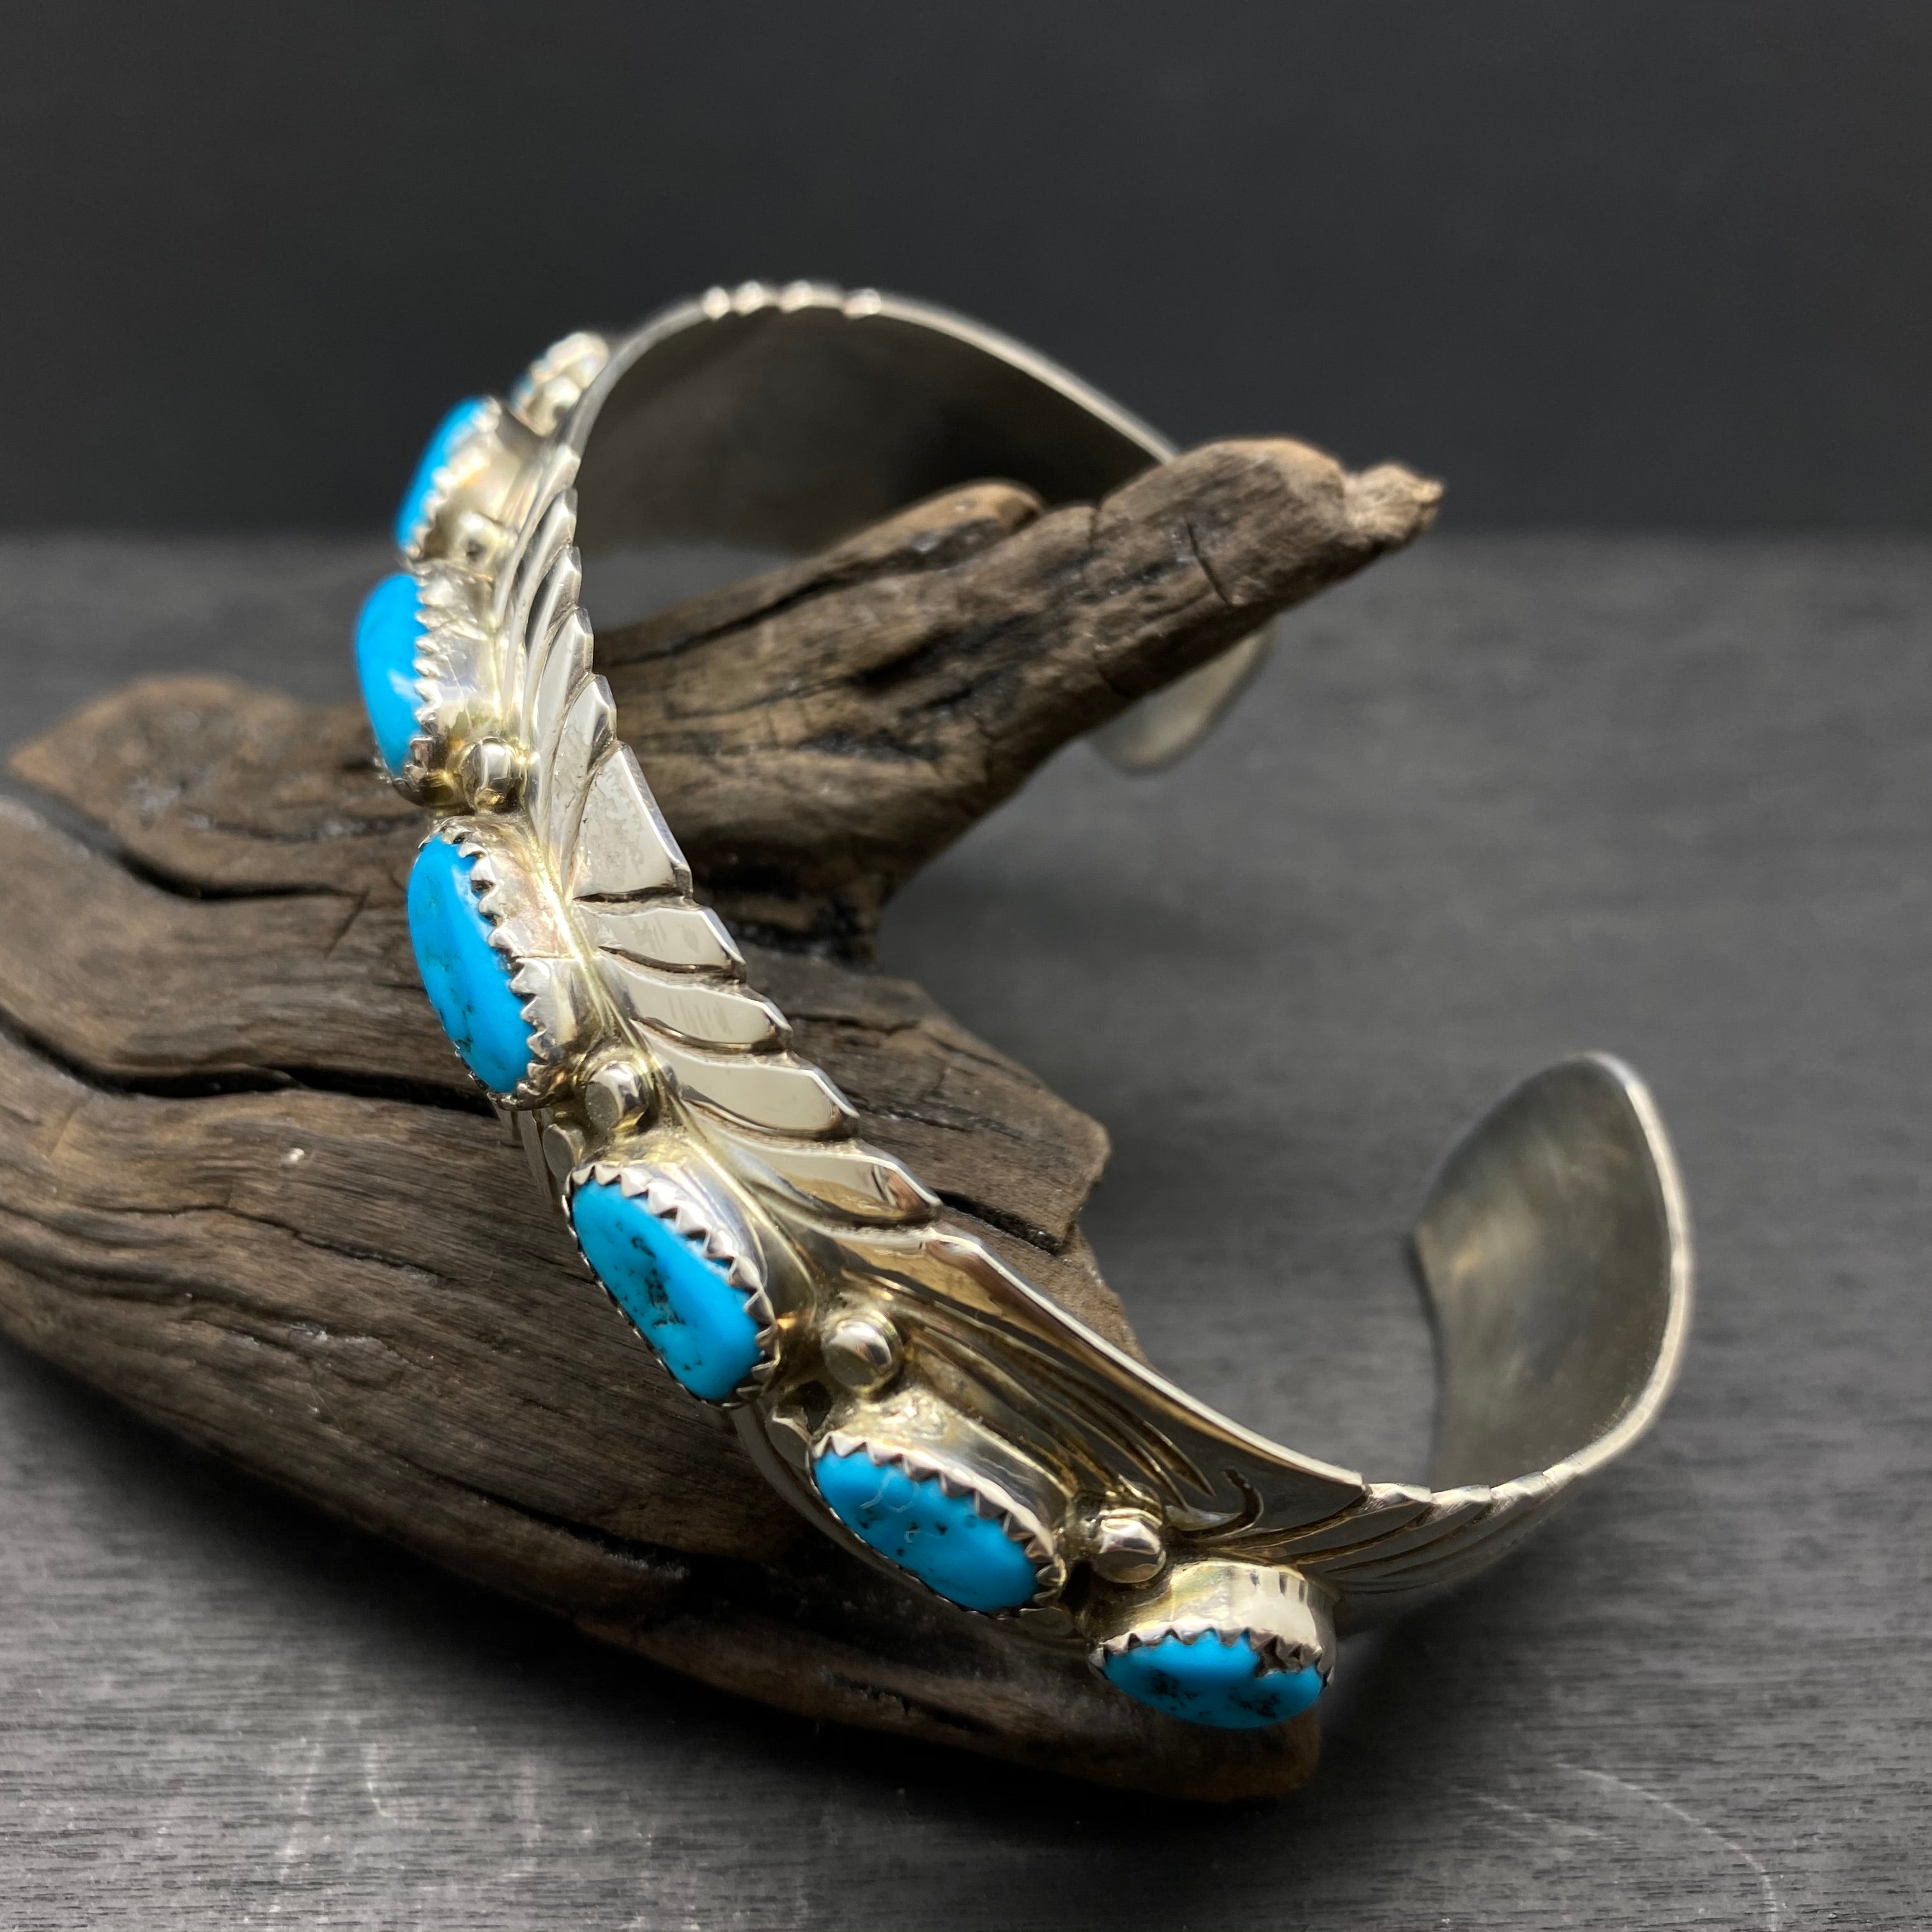 Sleeping Beauty Turquoise Sterling Silver Cuff Bracelet by Sarah Chee